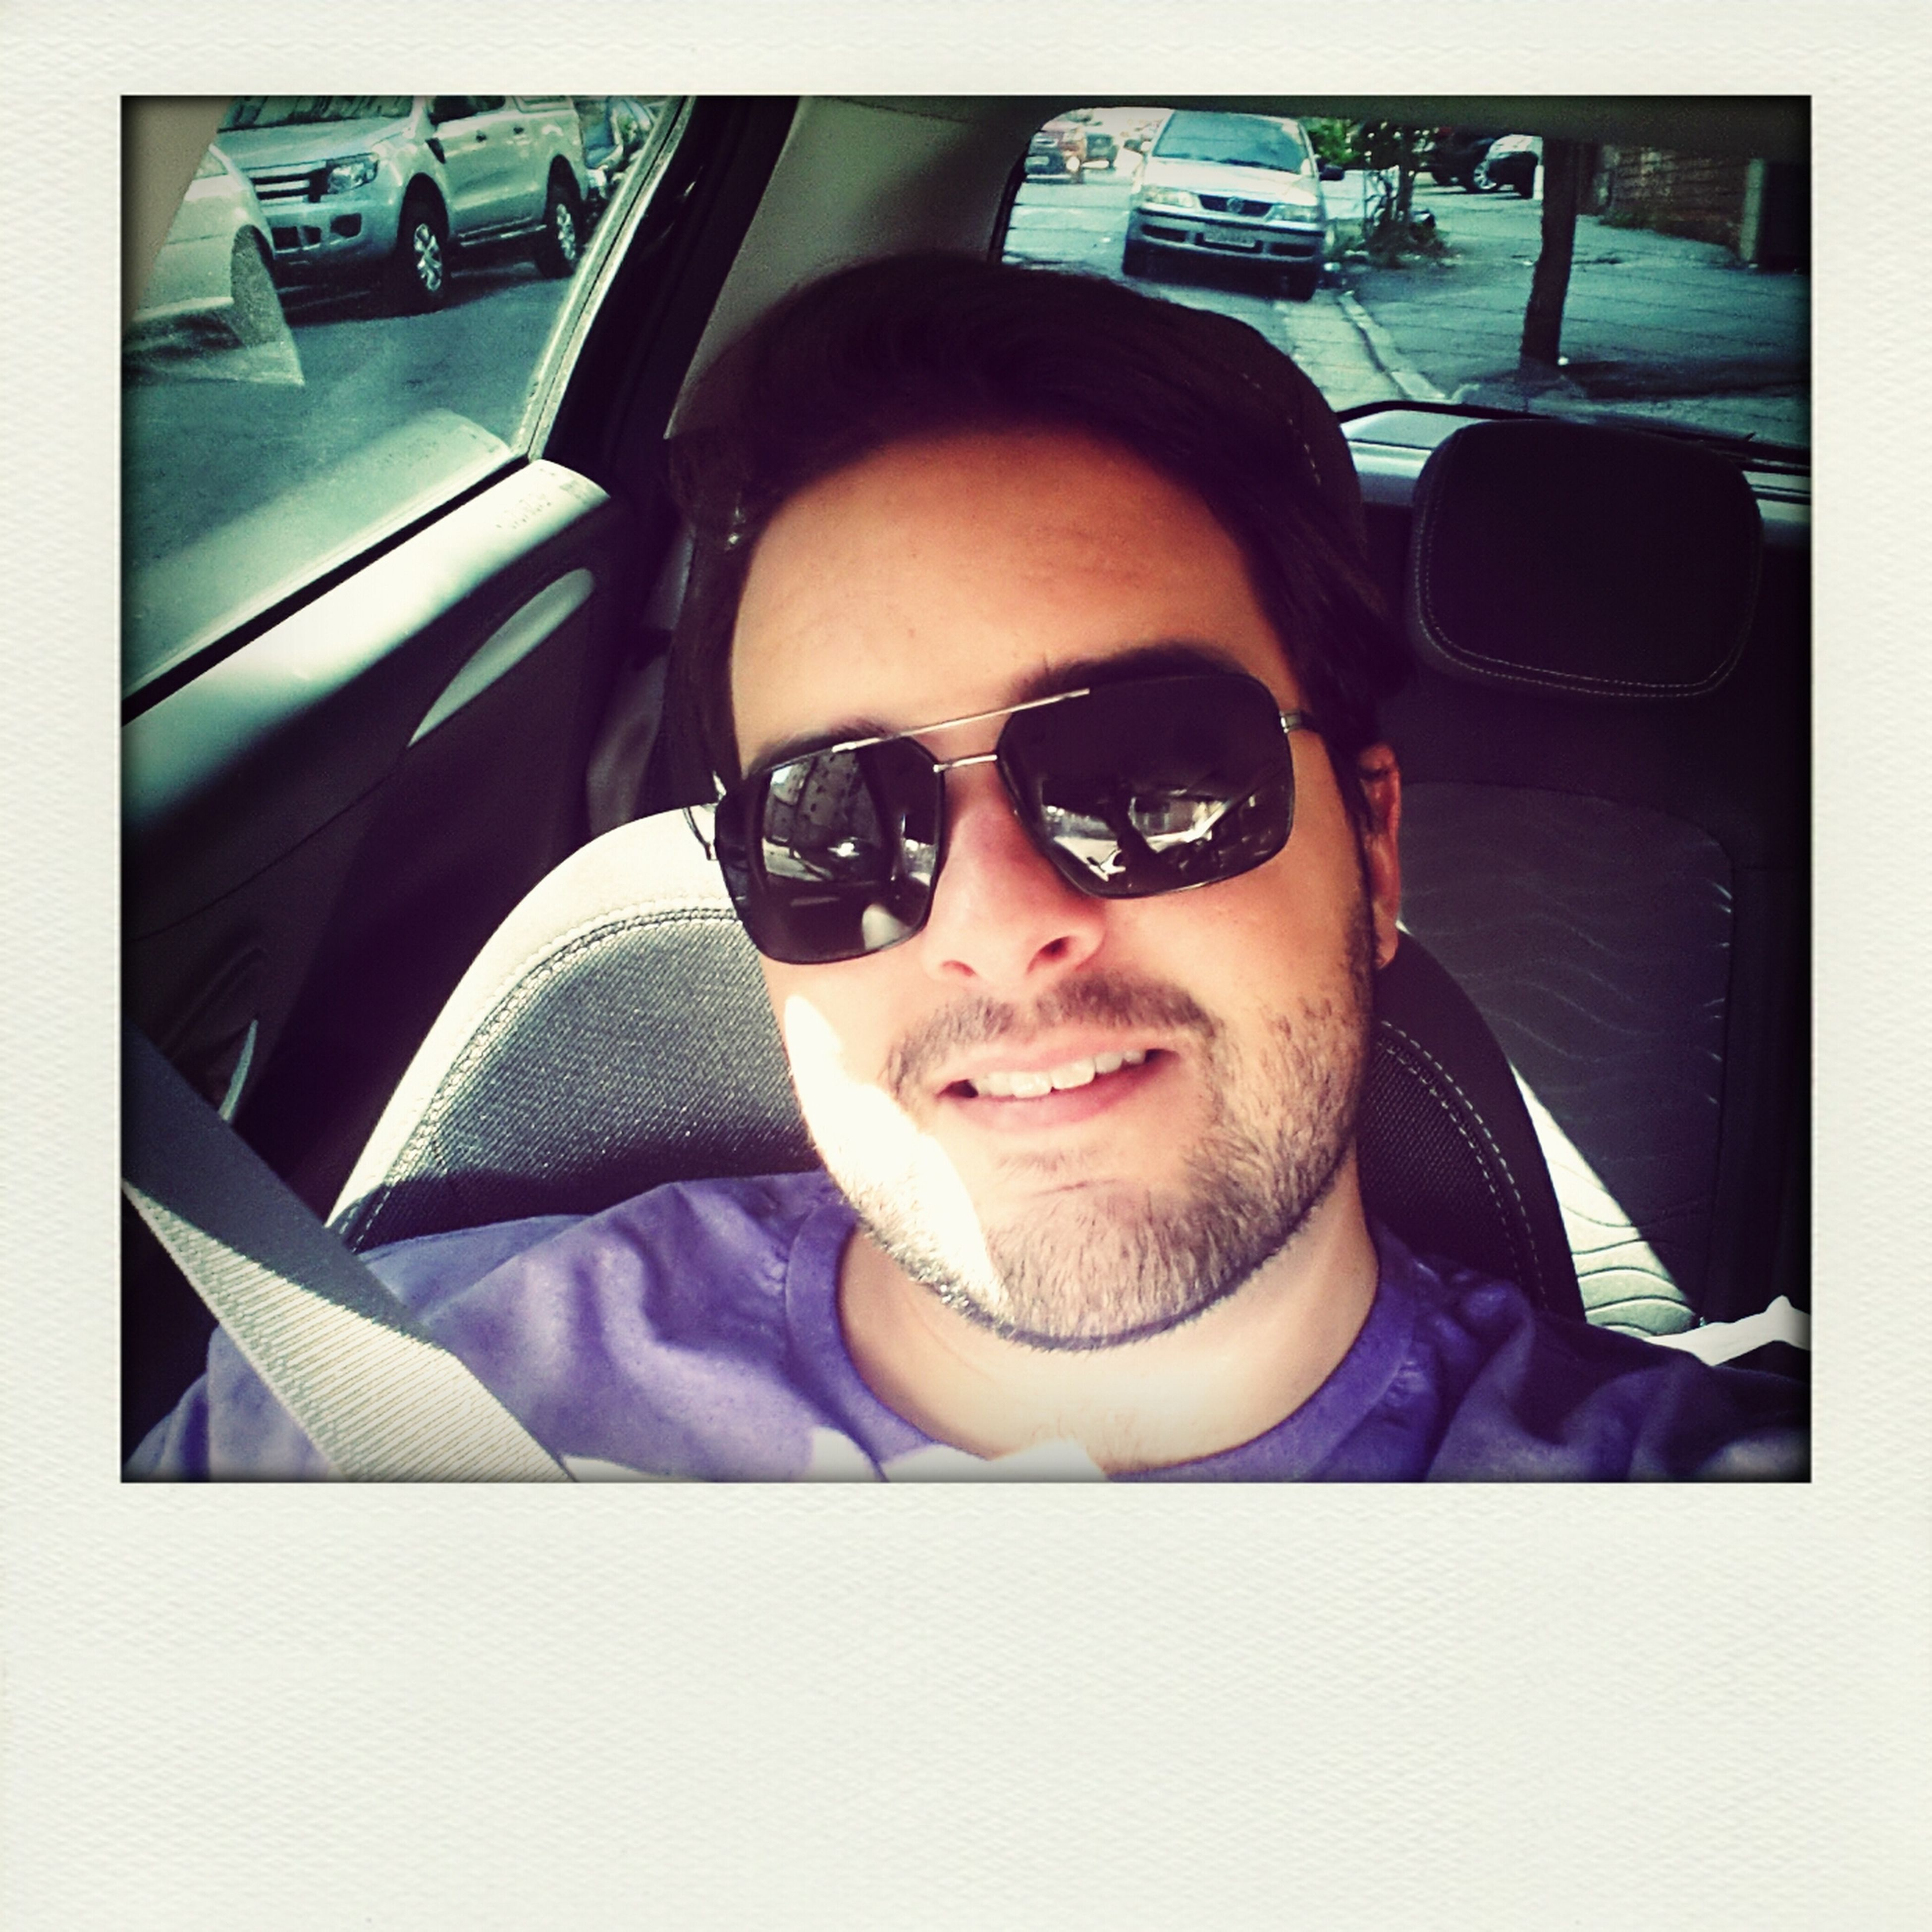 transfer print, looking at camera, car, portrait, transportation, land vehicle, indoors, mode of transport, young adult, person, lifestyles, auto post production filter, front view, sunglasses, leisure activity, sitting, vehicle interior, headshot